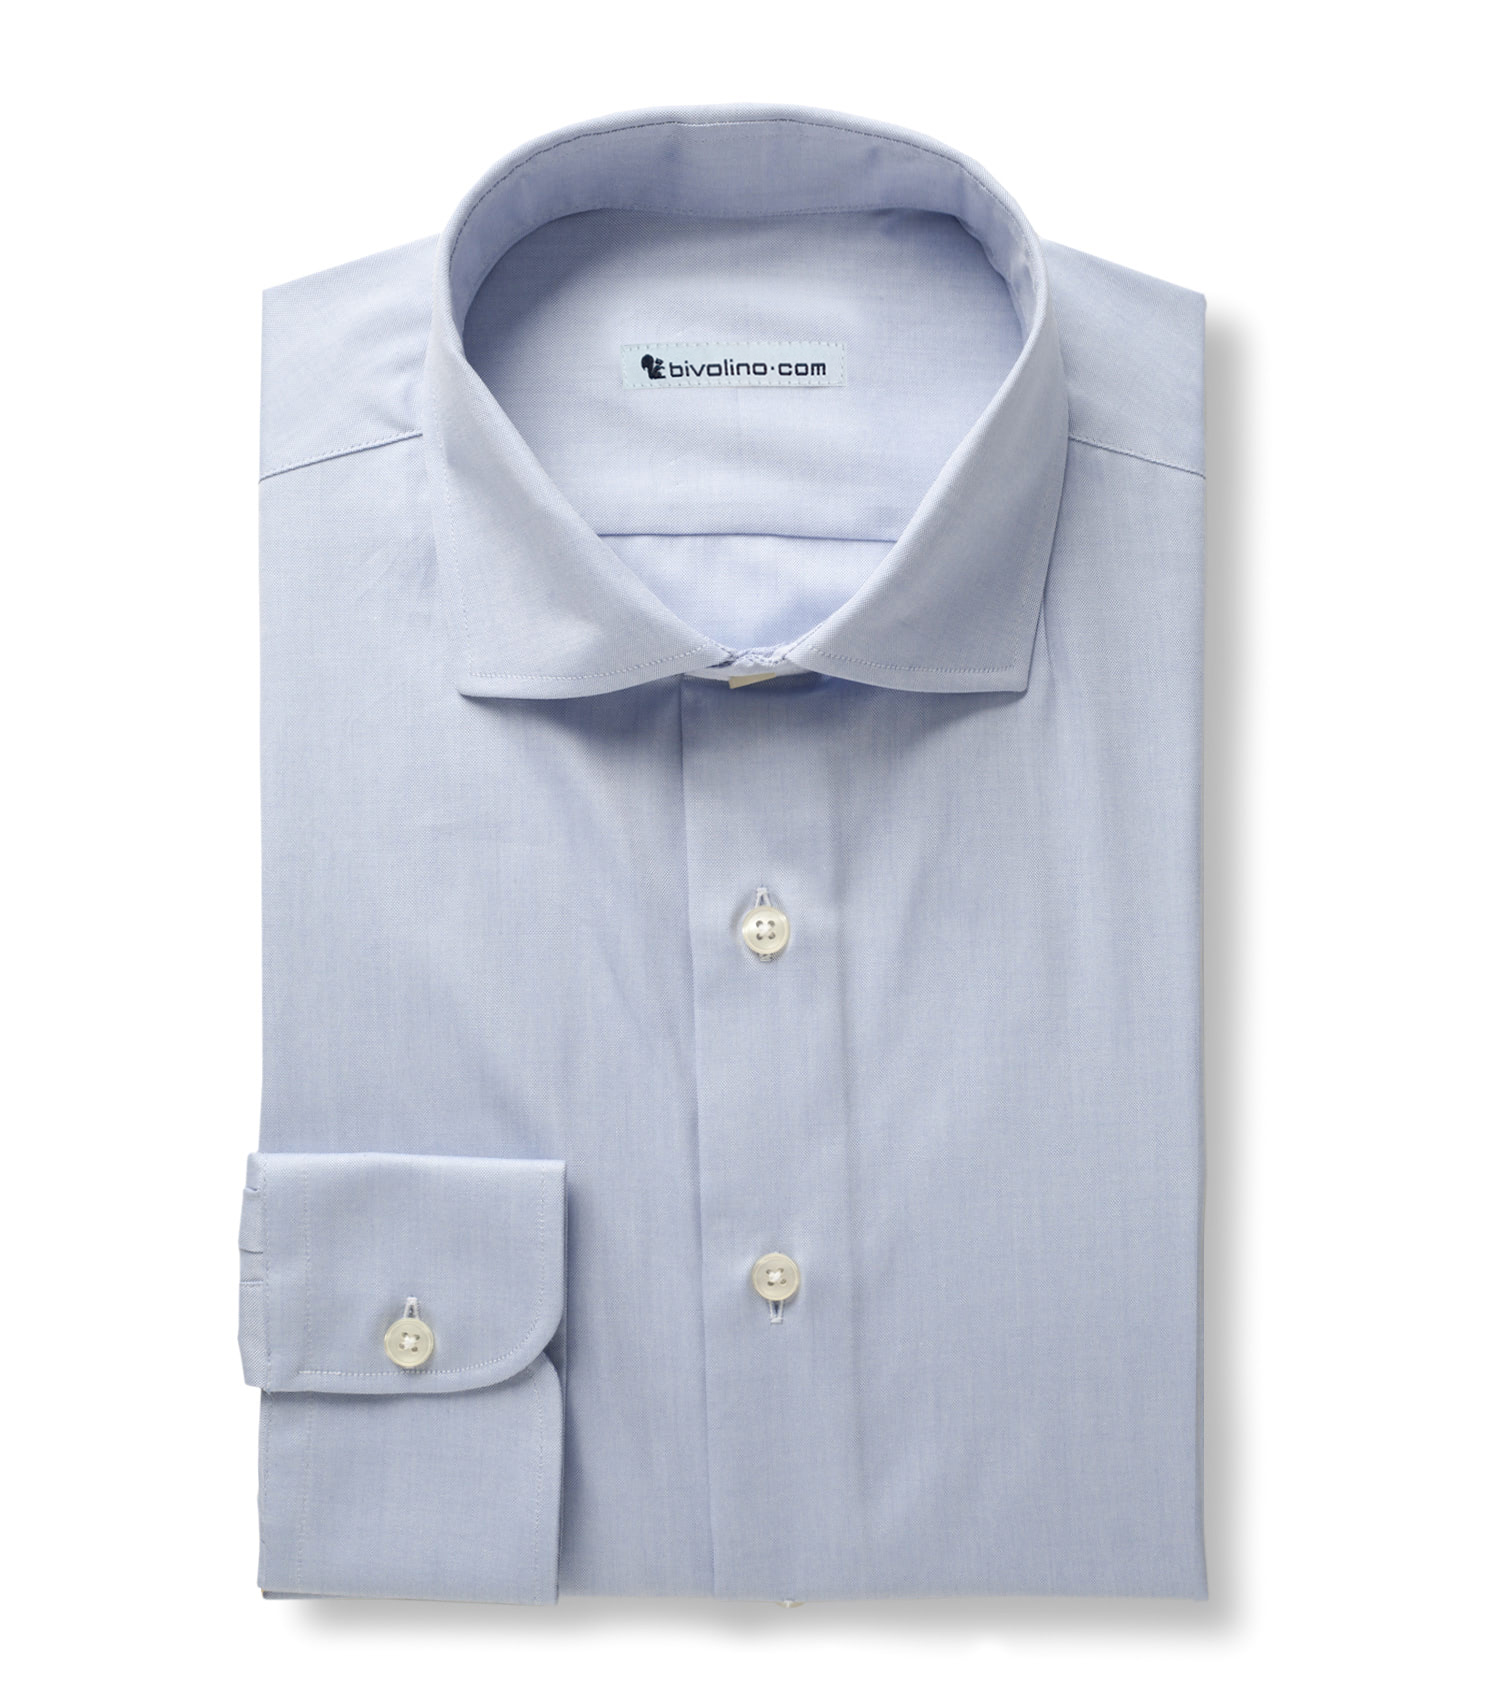 MANESTRA - Pinpoint Shirt plain light blue - KIWI 3